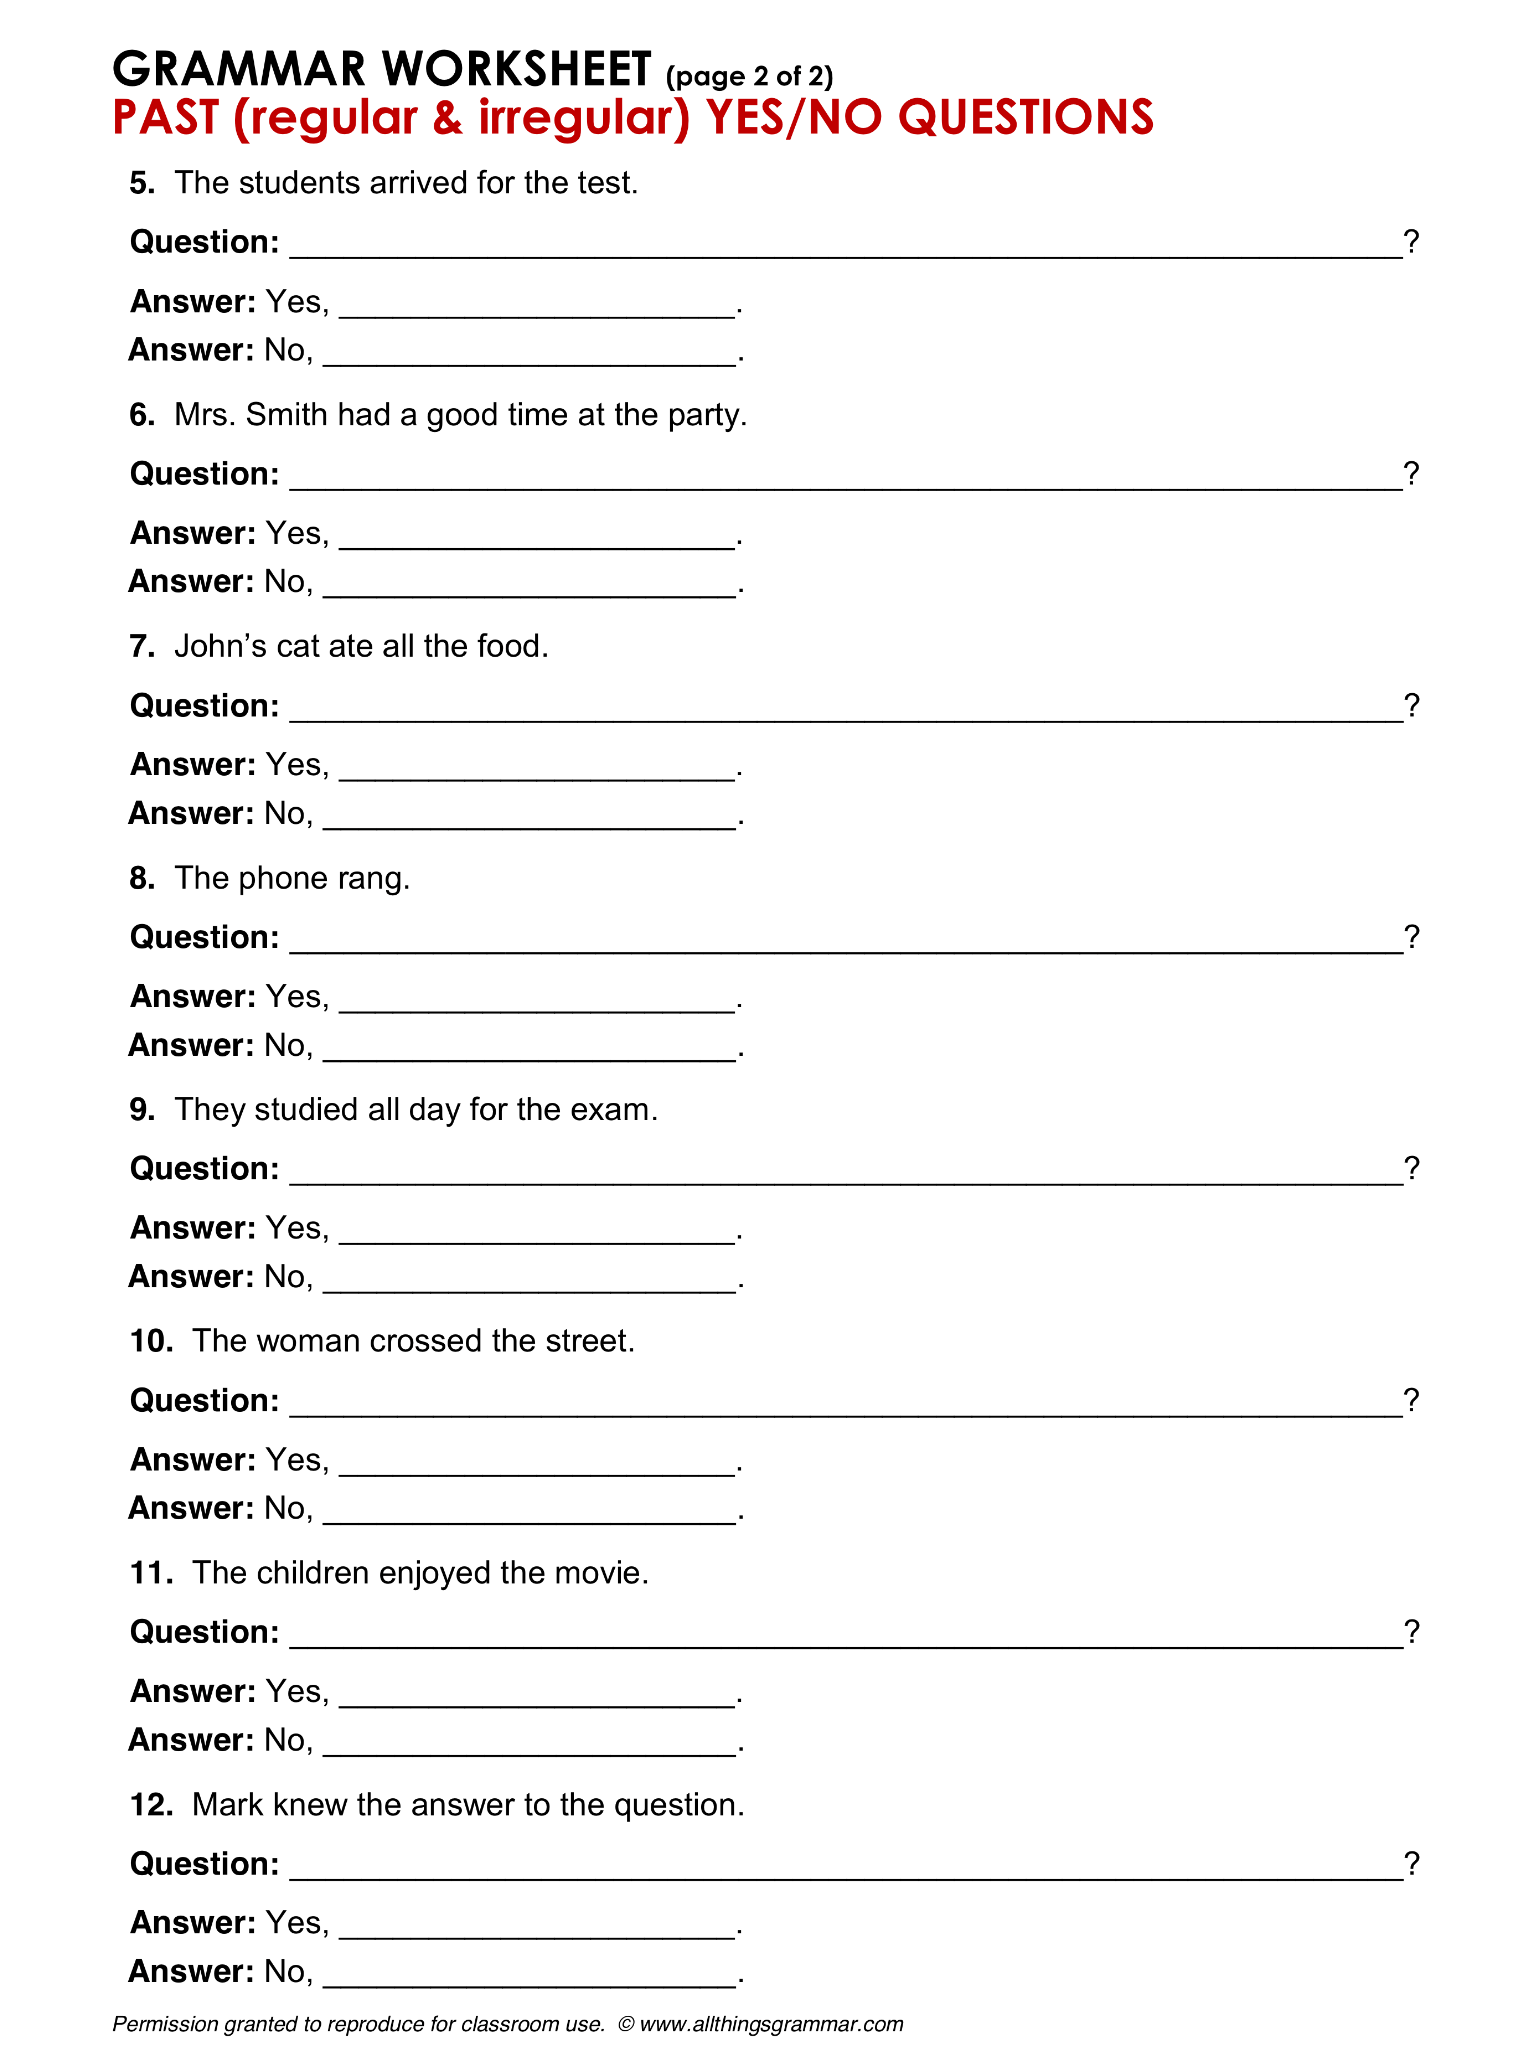 Worksheet For Yes No Questions